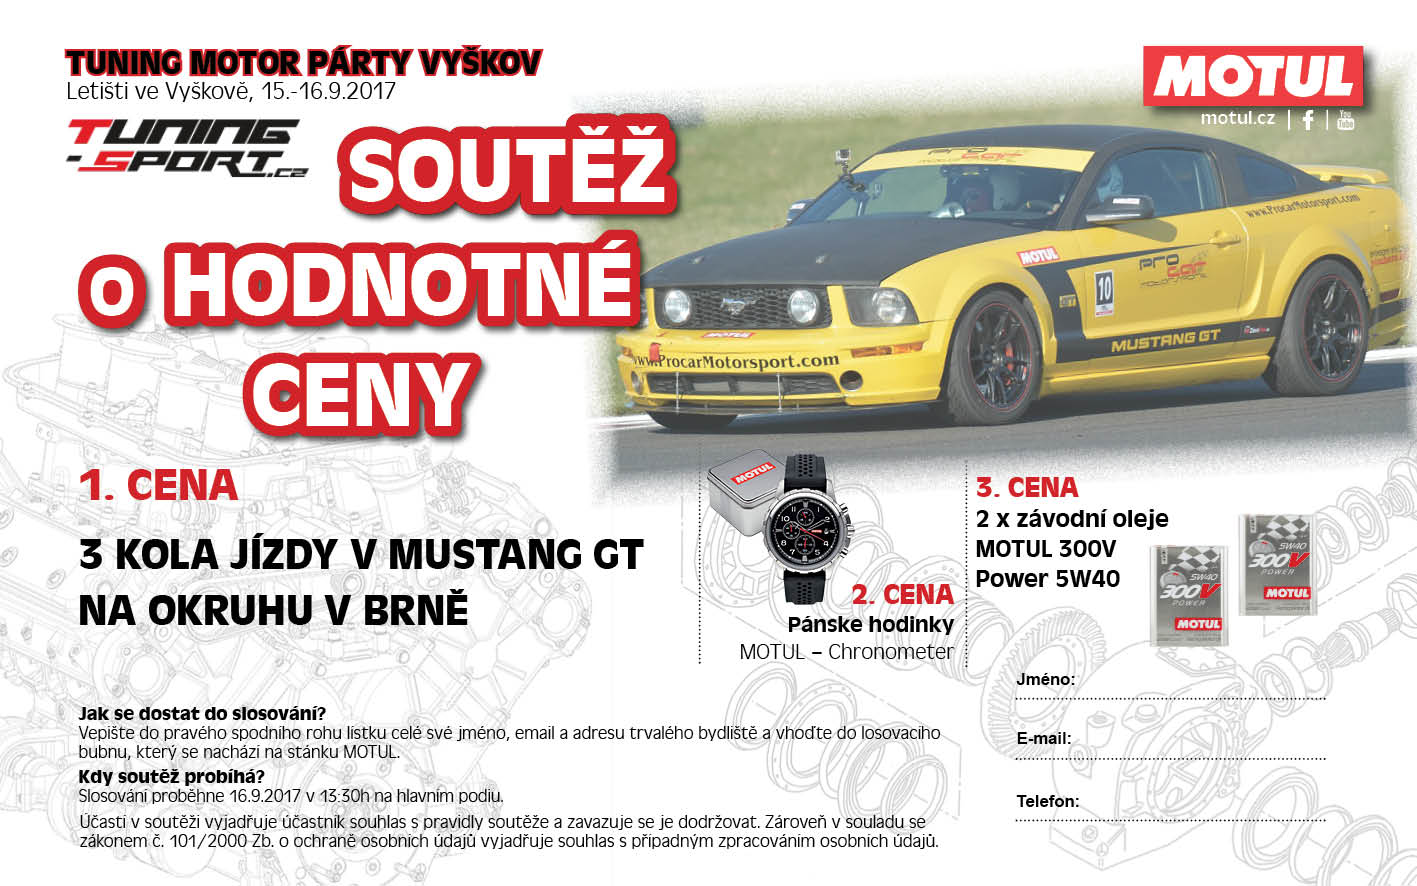 MOTUL na Tuning Motor Party Vyškov